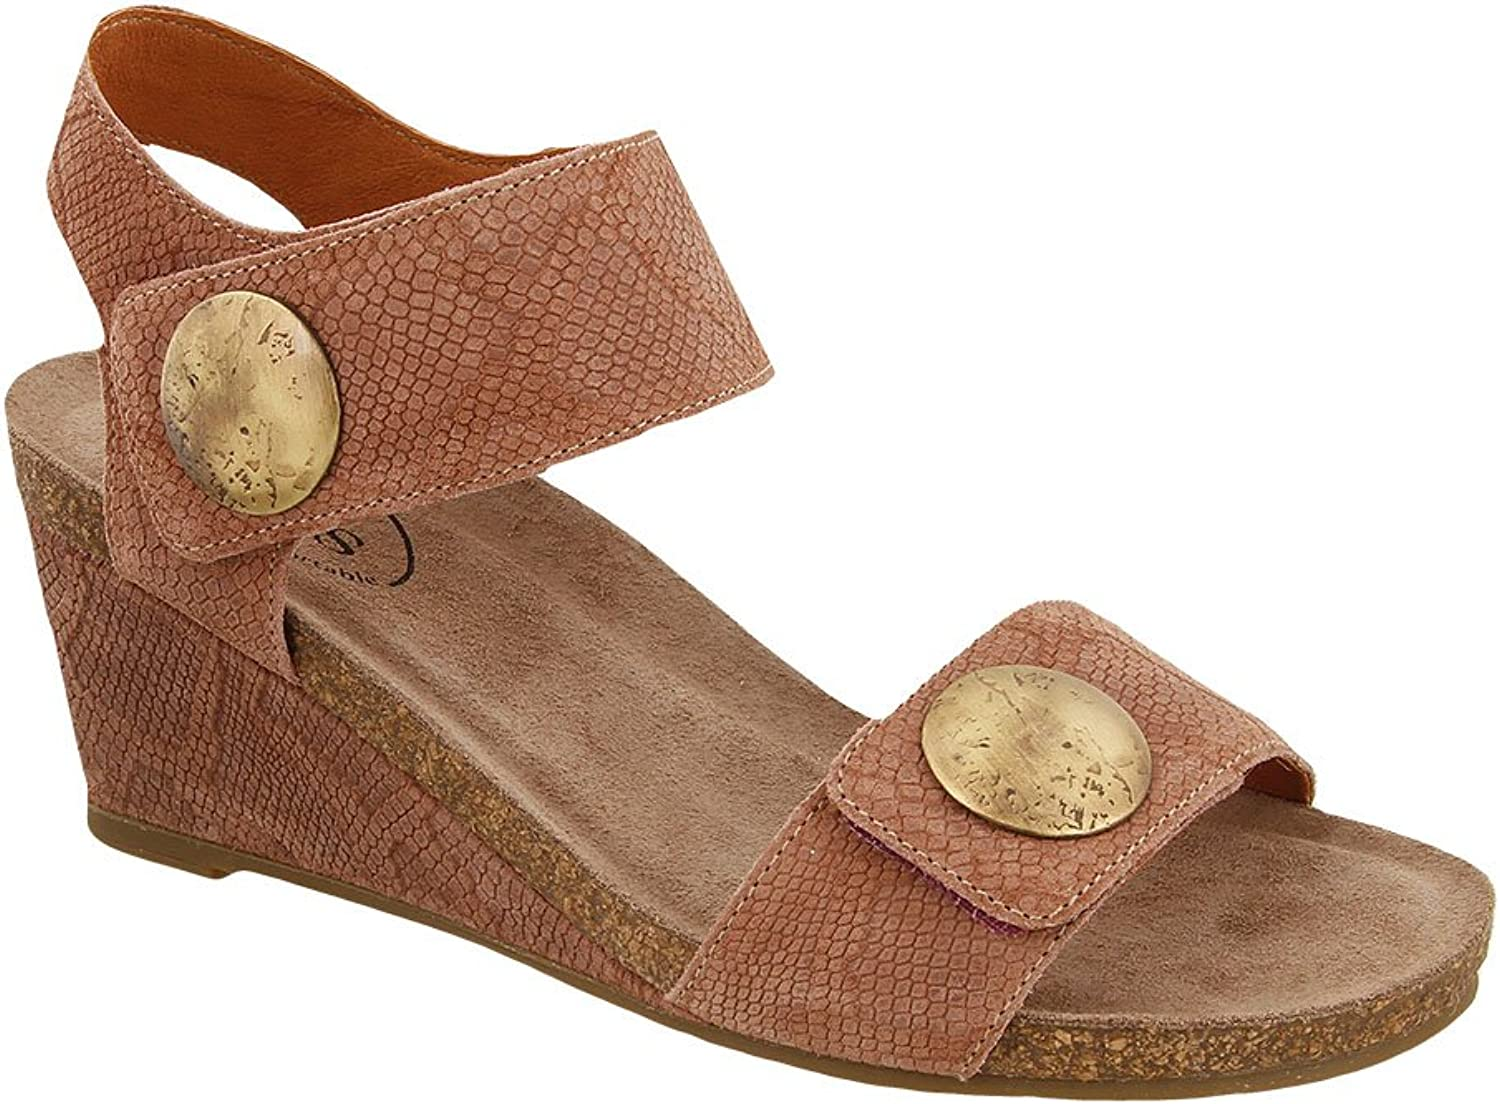 Taos Women's Carousel Wedge Sandal